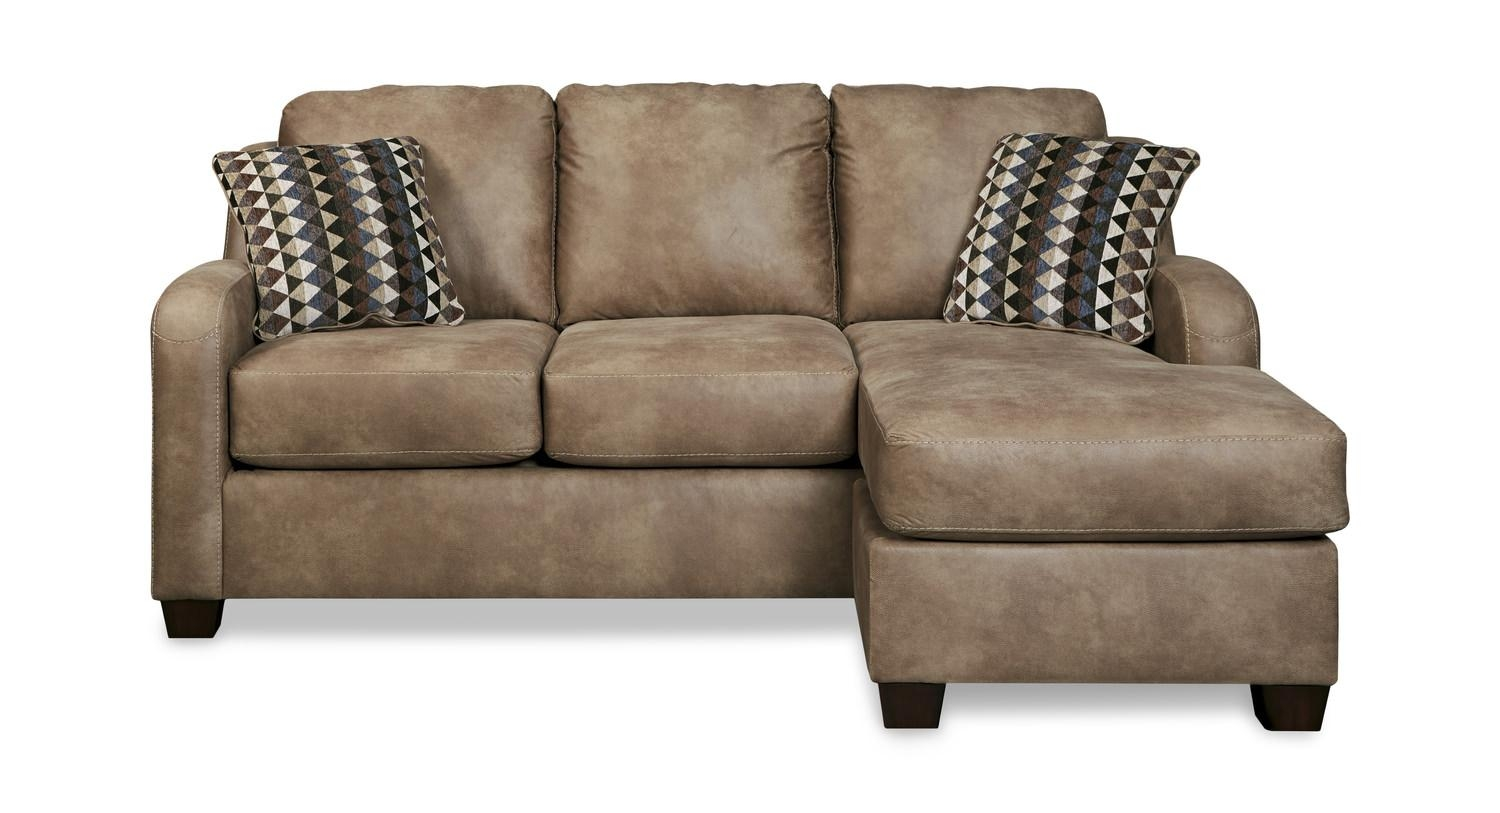 Living Room Furniture – Sofas & Couches – Hom Furniture Inside Camel Color Sofas (Image 13 of 20)